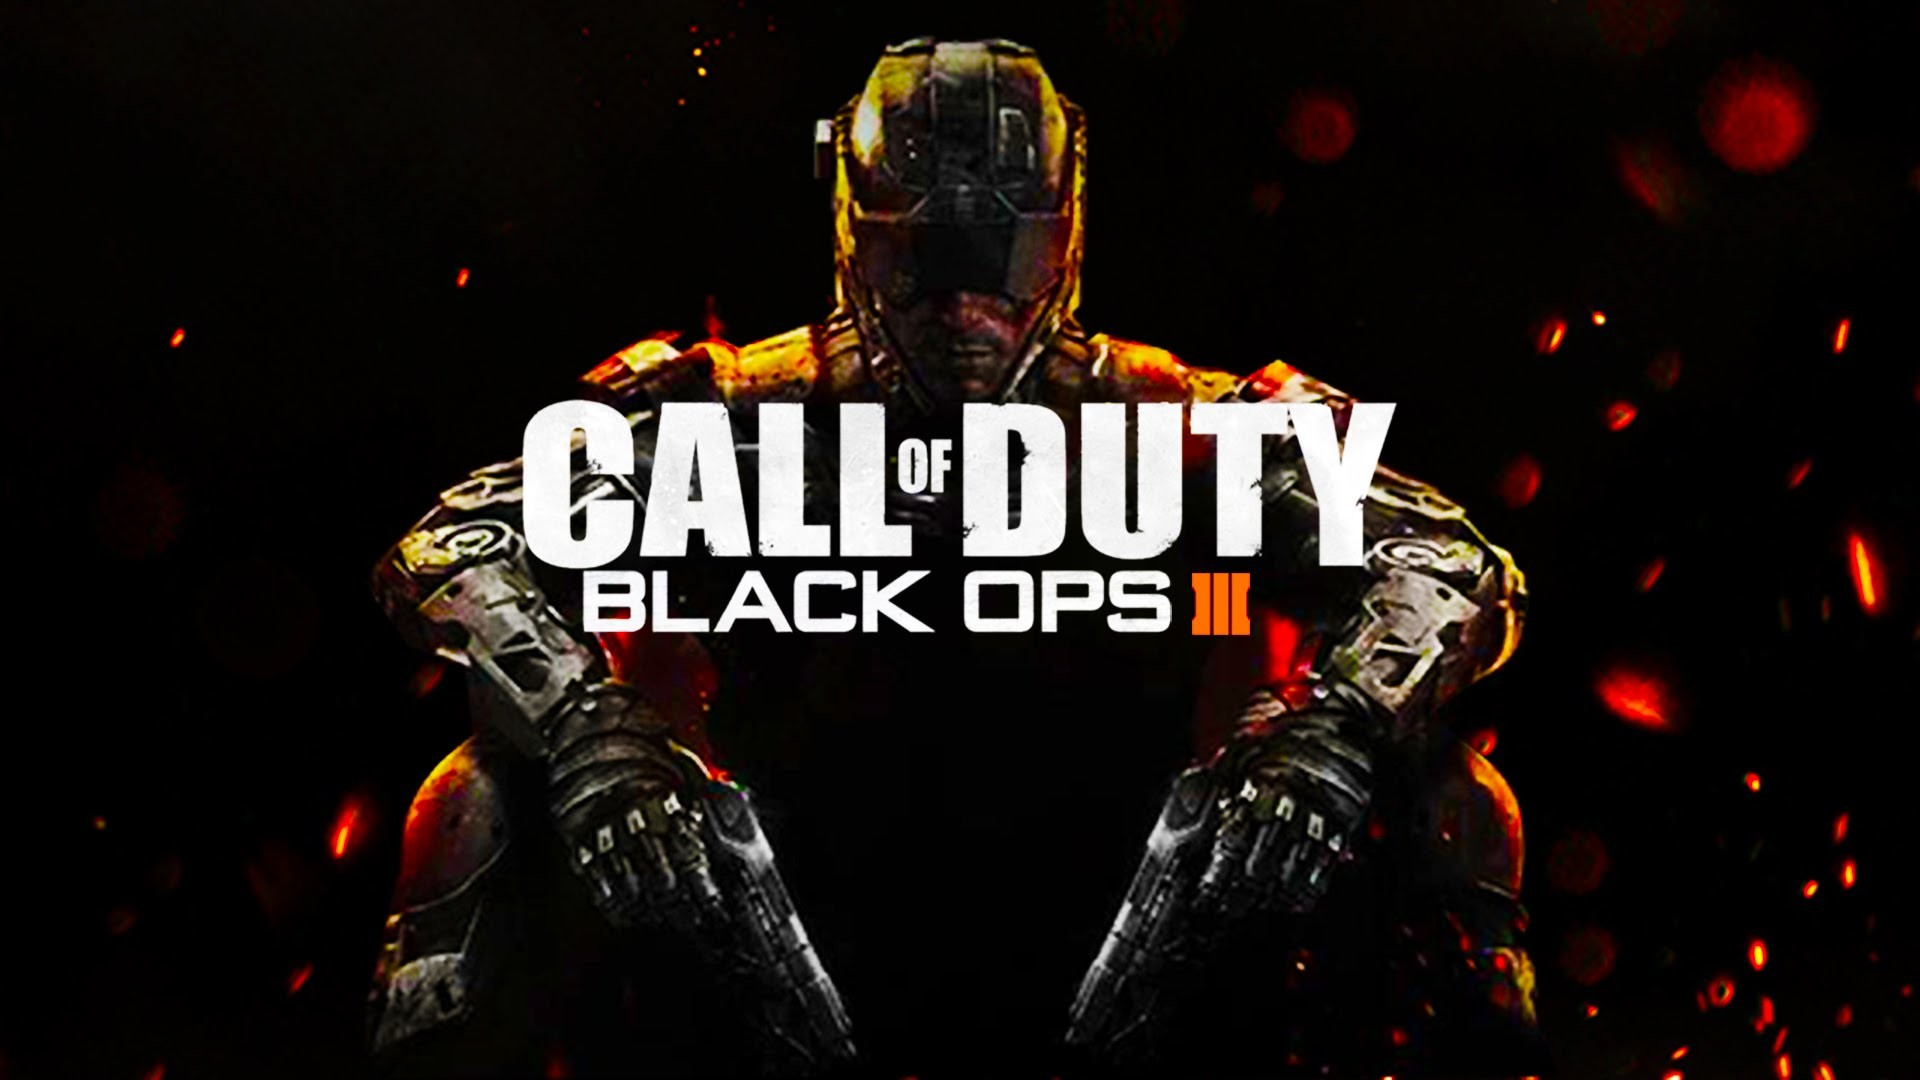 Black Ops 3 LiveStream! – Zombies & Multiplayer – Call Of Duty BO3 GamePlay  – YouTube